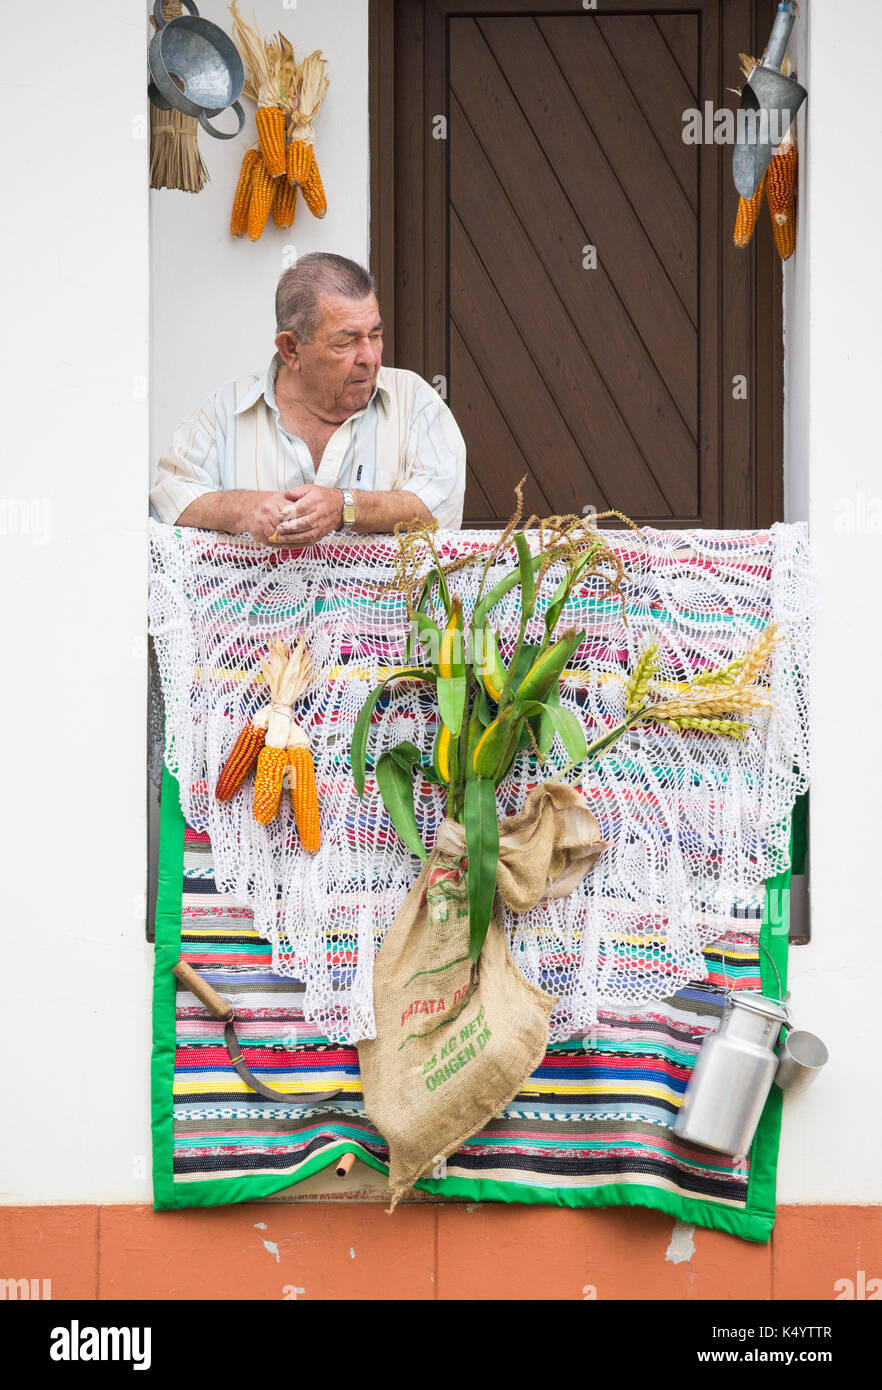 Teror, Gran Canaria, Canary Islands, Spain. 7th Sep, 2017. Every year on the 7/8th Sept, thousands of peregrinos (pilgrims) make their way to the mountain village of Teror on Gran Canaria to pay their respects to the island`s patron saint, nuestra senora del pino. PICTURED: A man watches the street parade from his balcony. Credit: ALAN DAWSON/Alamy Live News - Stock Image